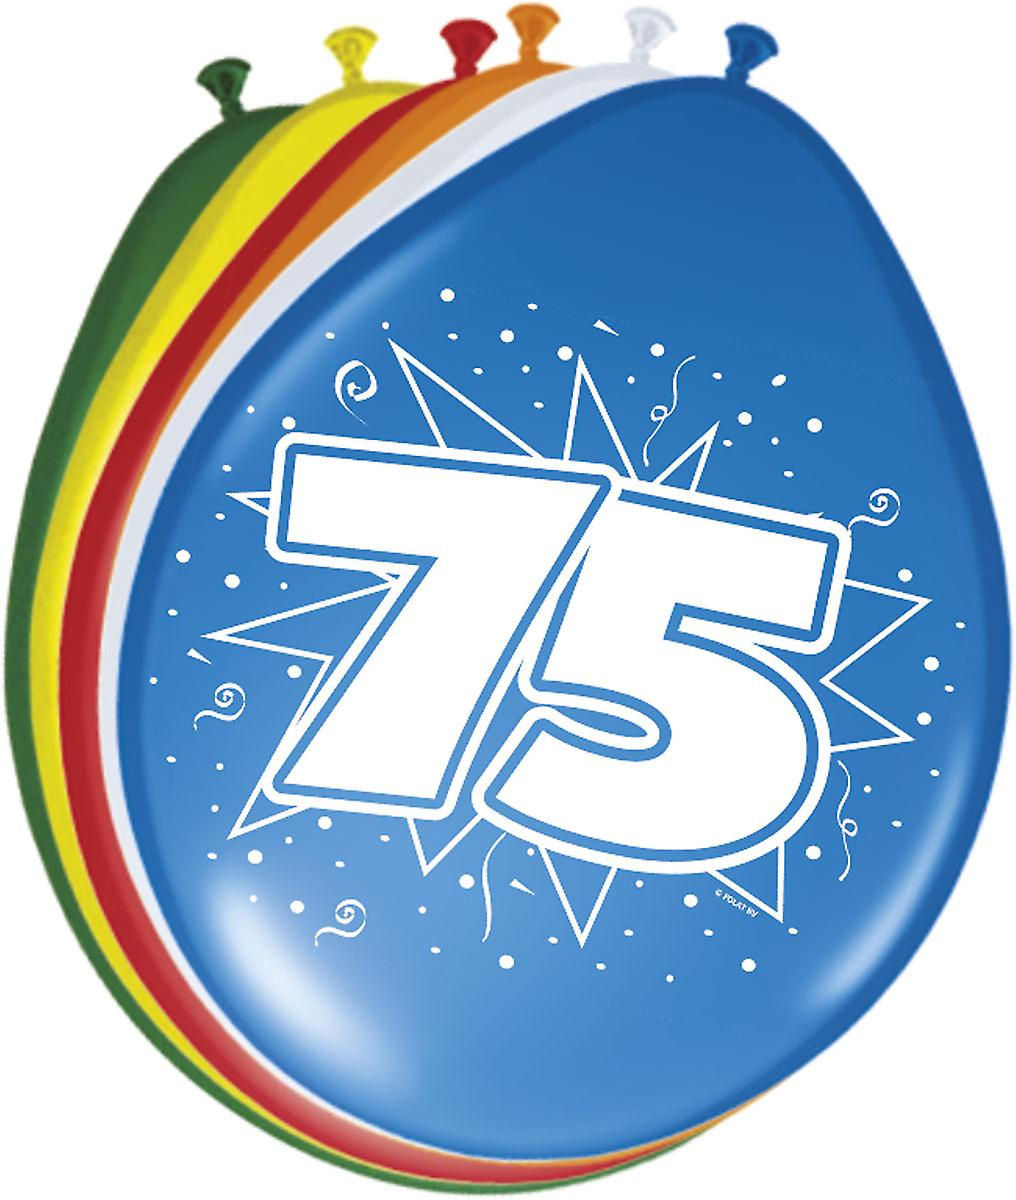 Colorful Balloons Balloon Number 75 Birthday 8 St Decoration Party